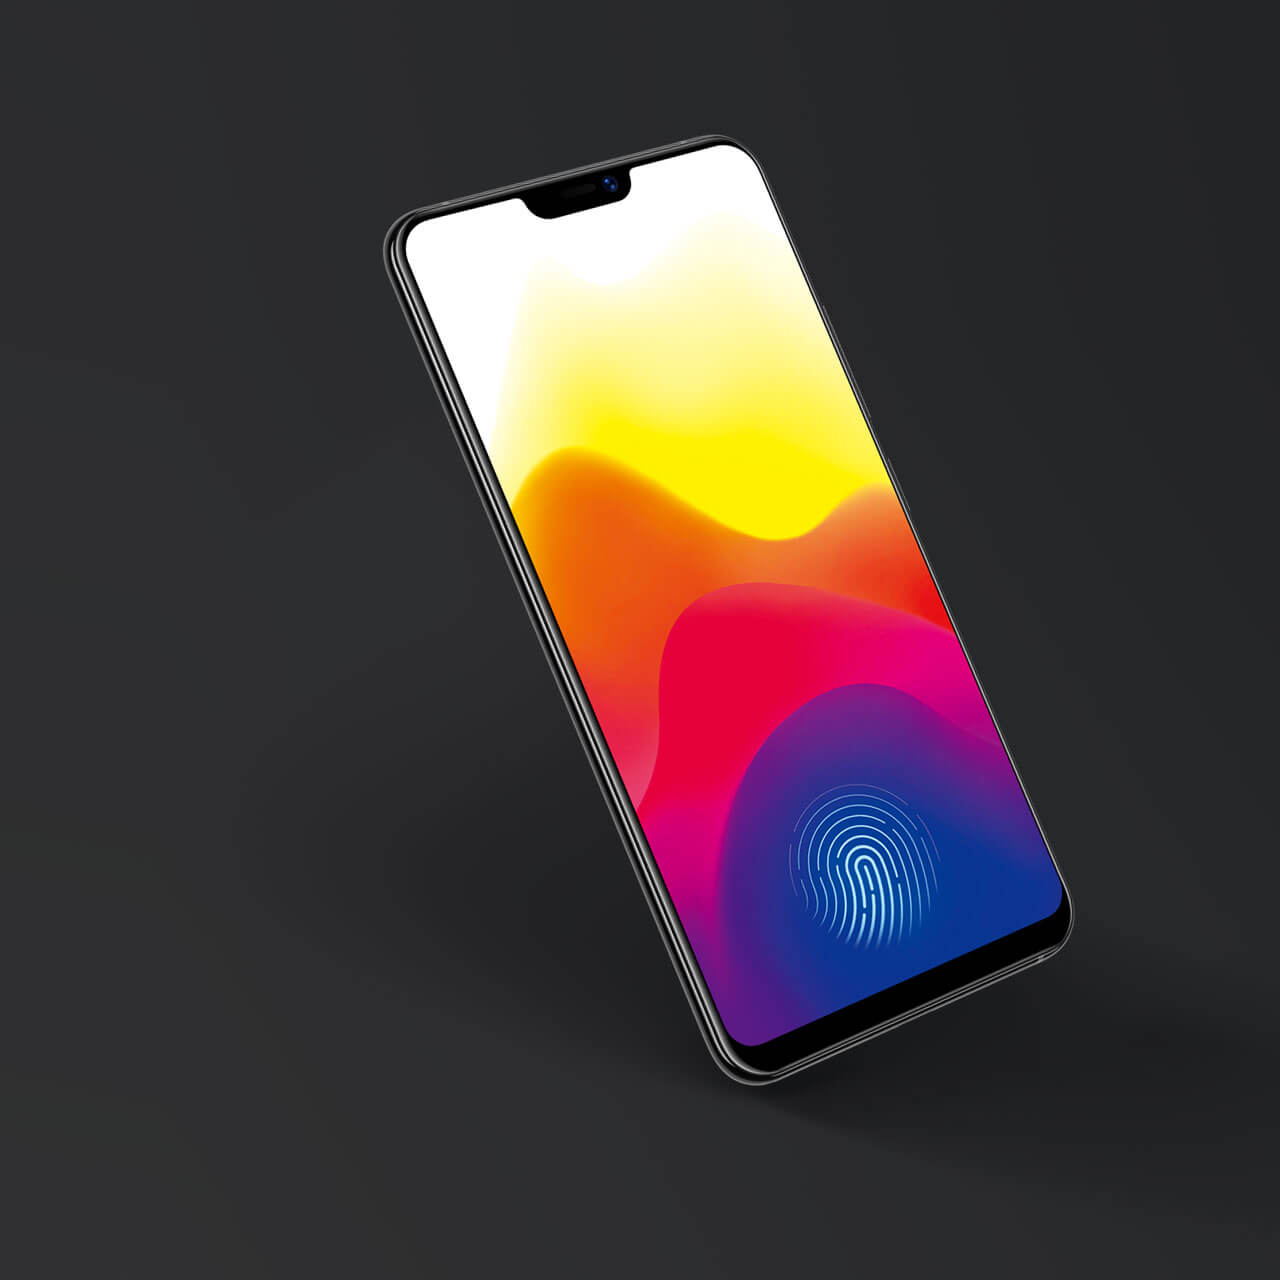 Vivo X21 India launch, Price and critical review